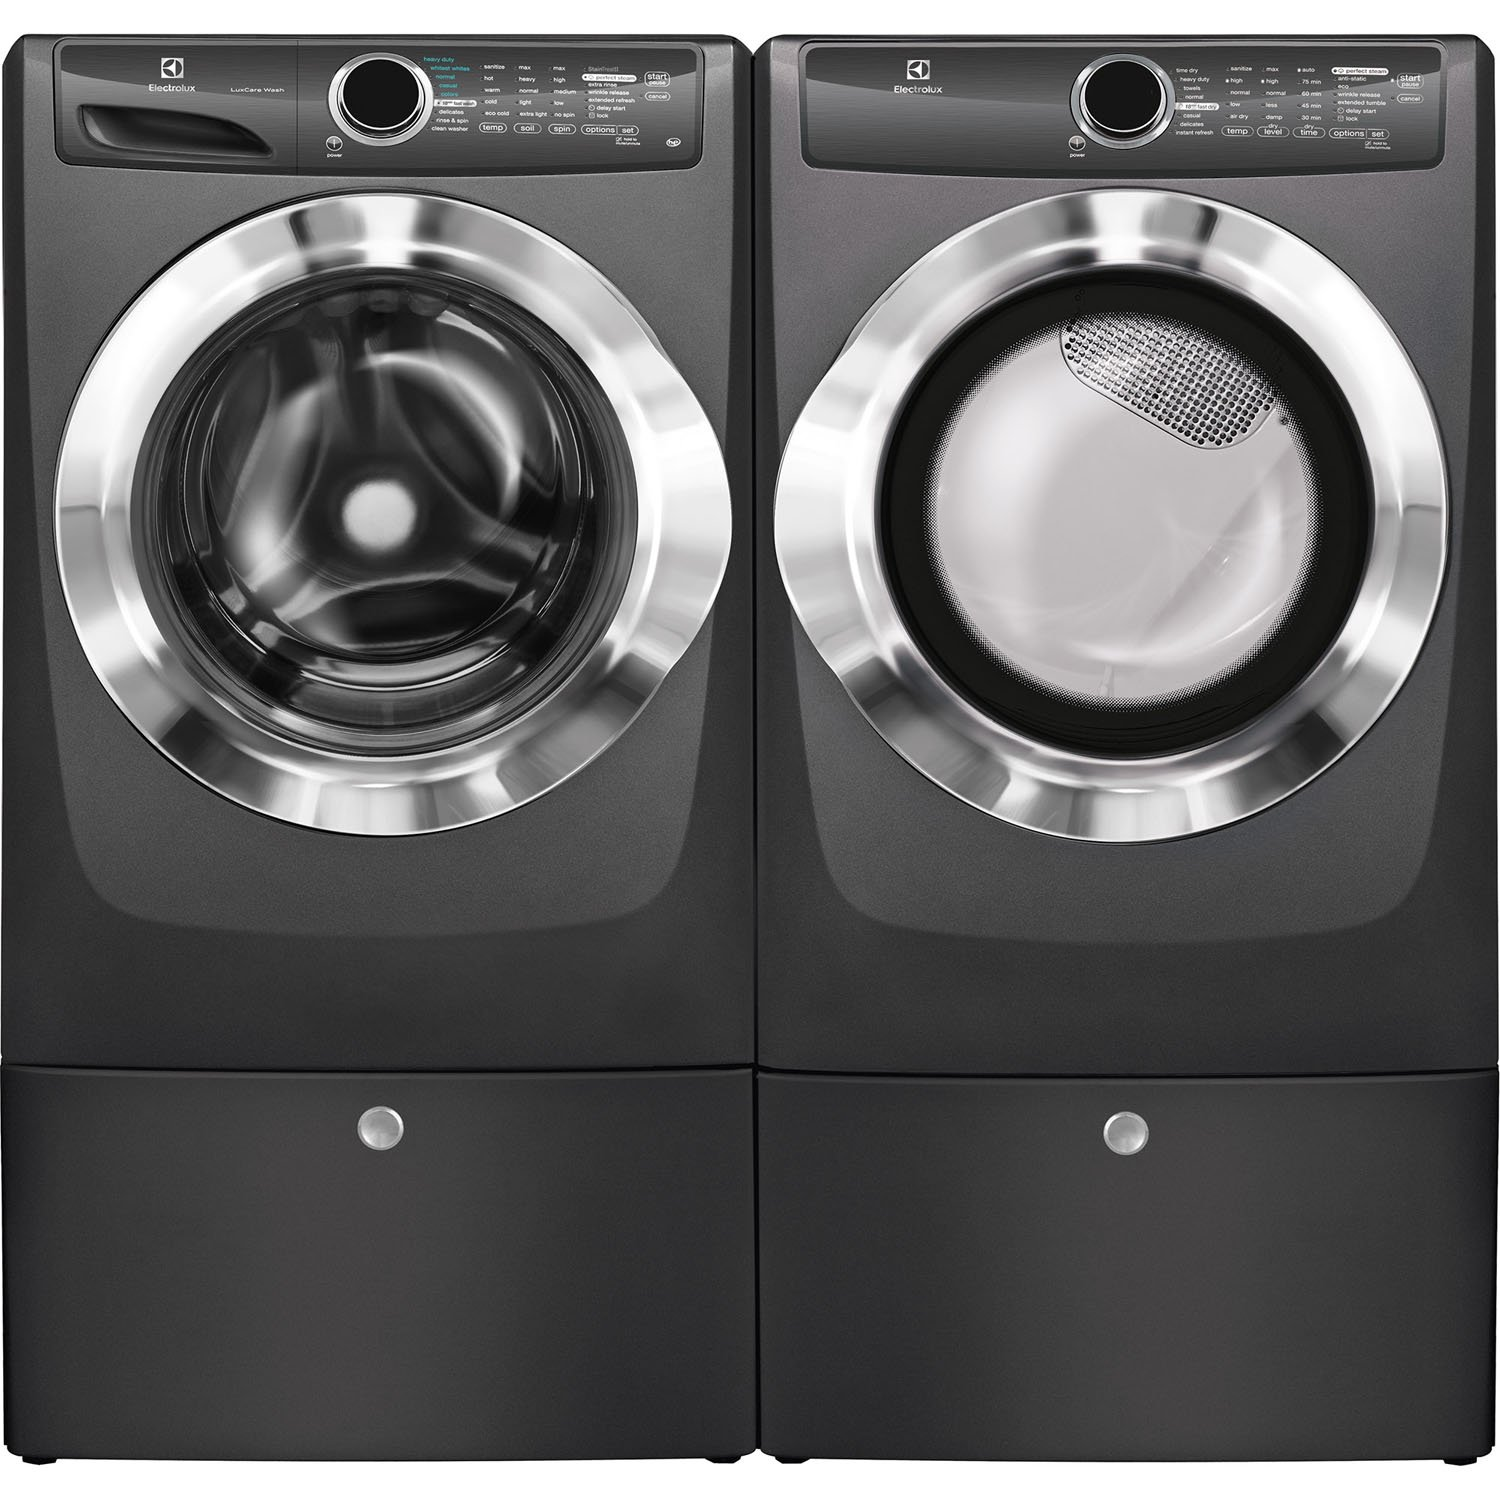 nzl pedestal and dp electric appliances electrolux load pedestals dryer washer front set with amazon com